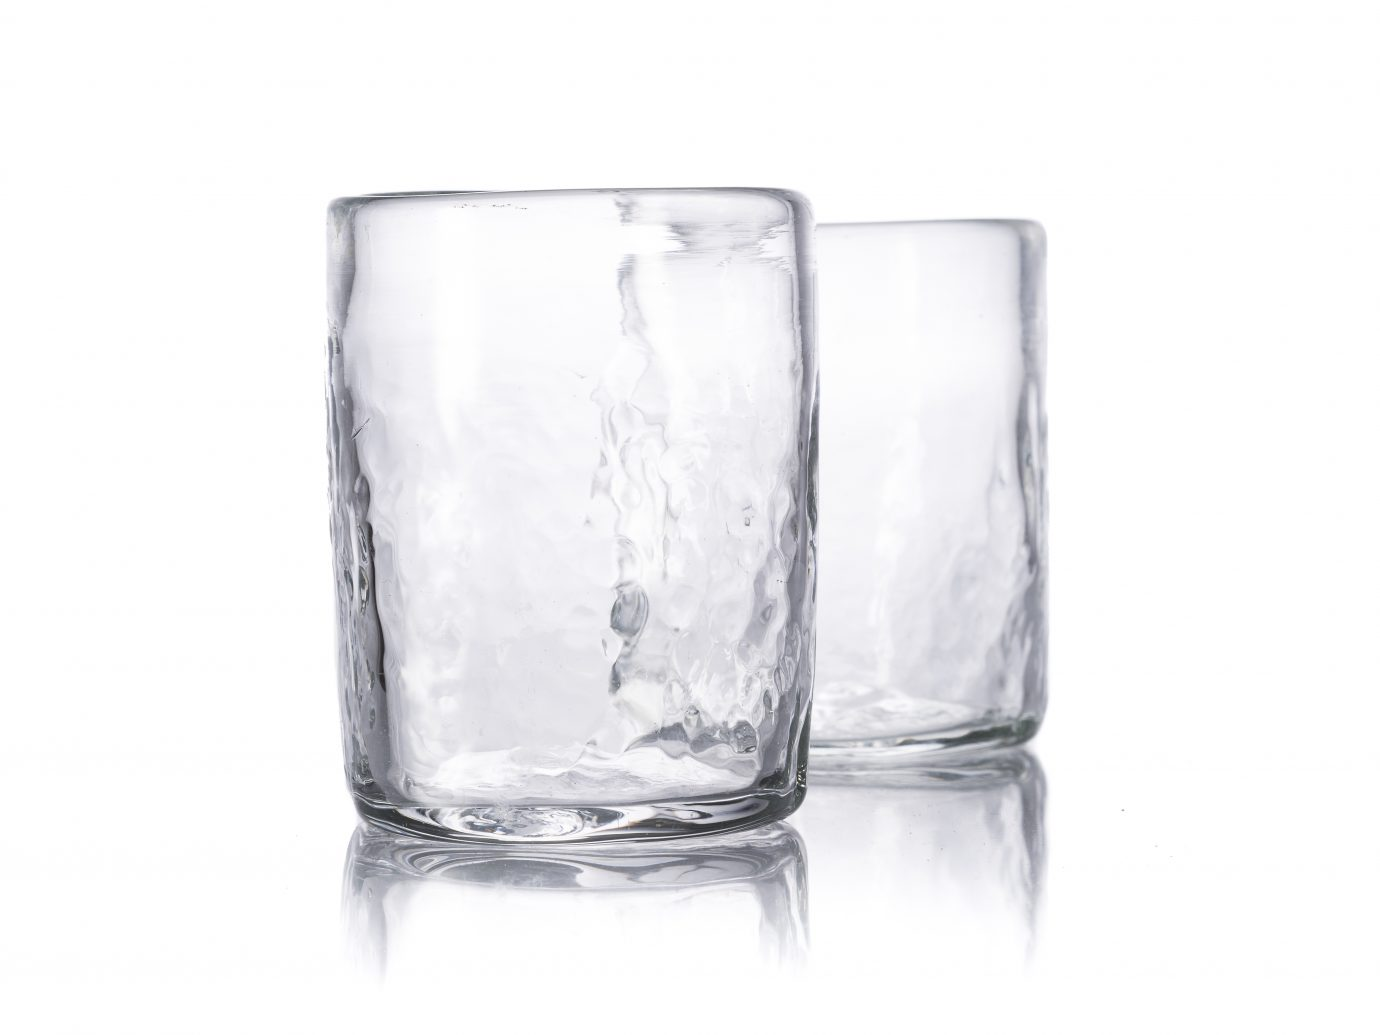 Studio Xaquixe Glasses, handmade drinking glasses from oaxaca with bubbles in them